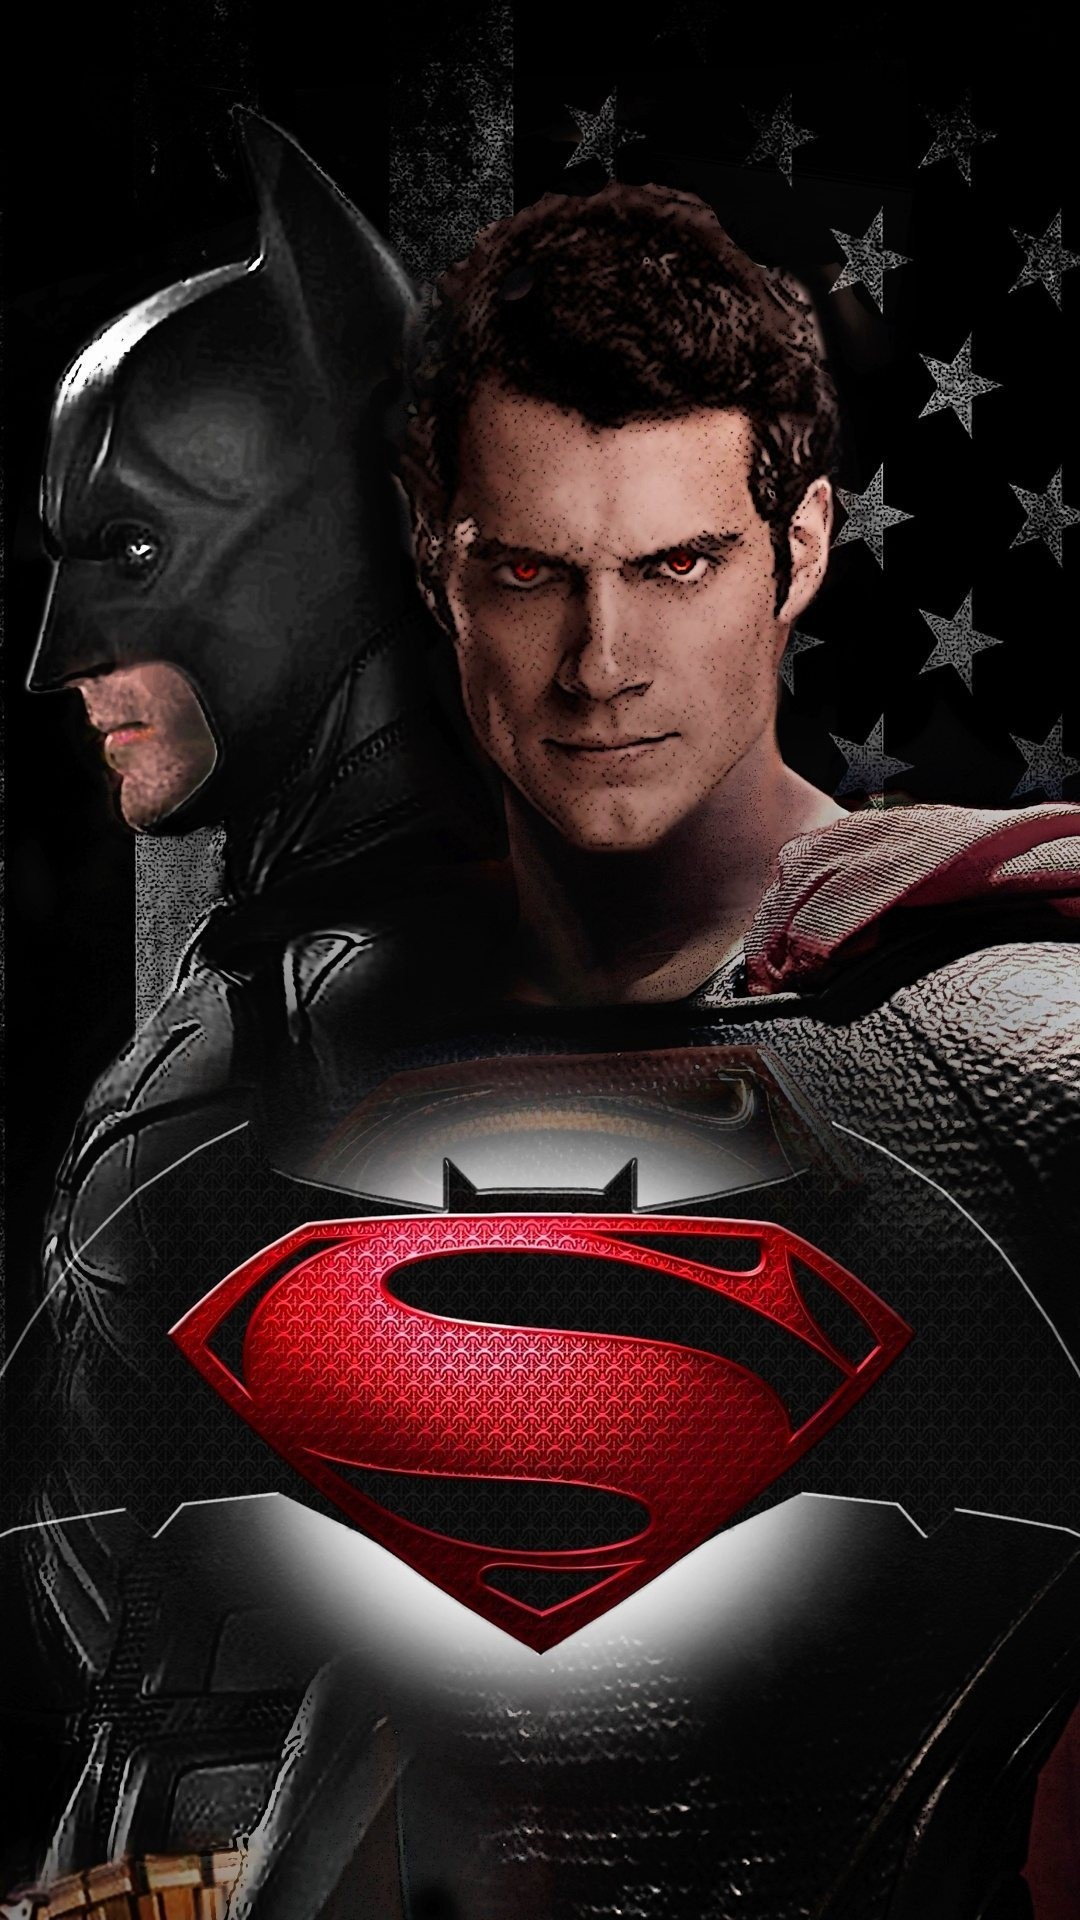 Batman VS Superman HD Wallpapers for iPhone 7 | Wallpapers ...